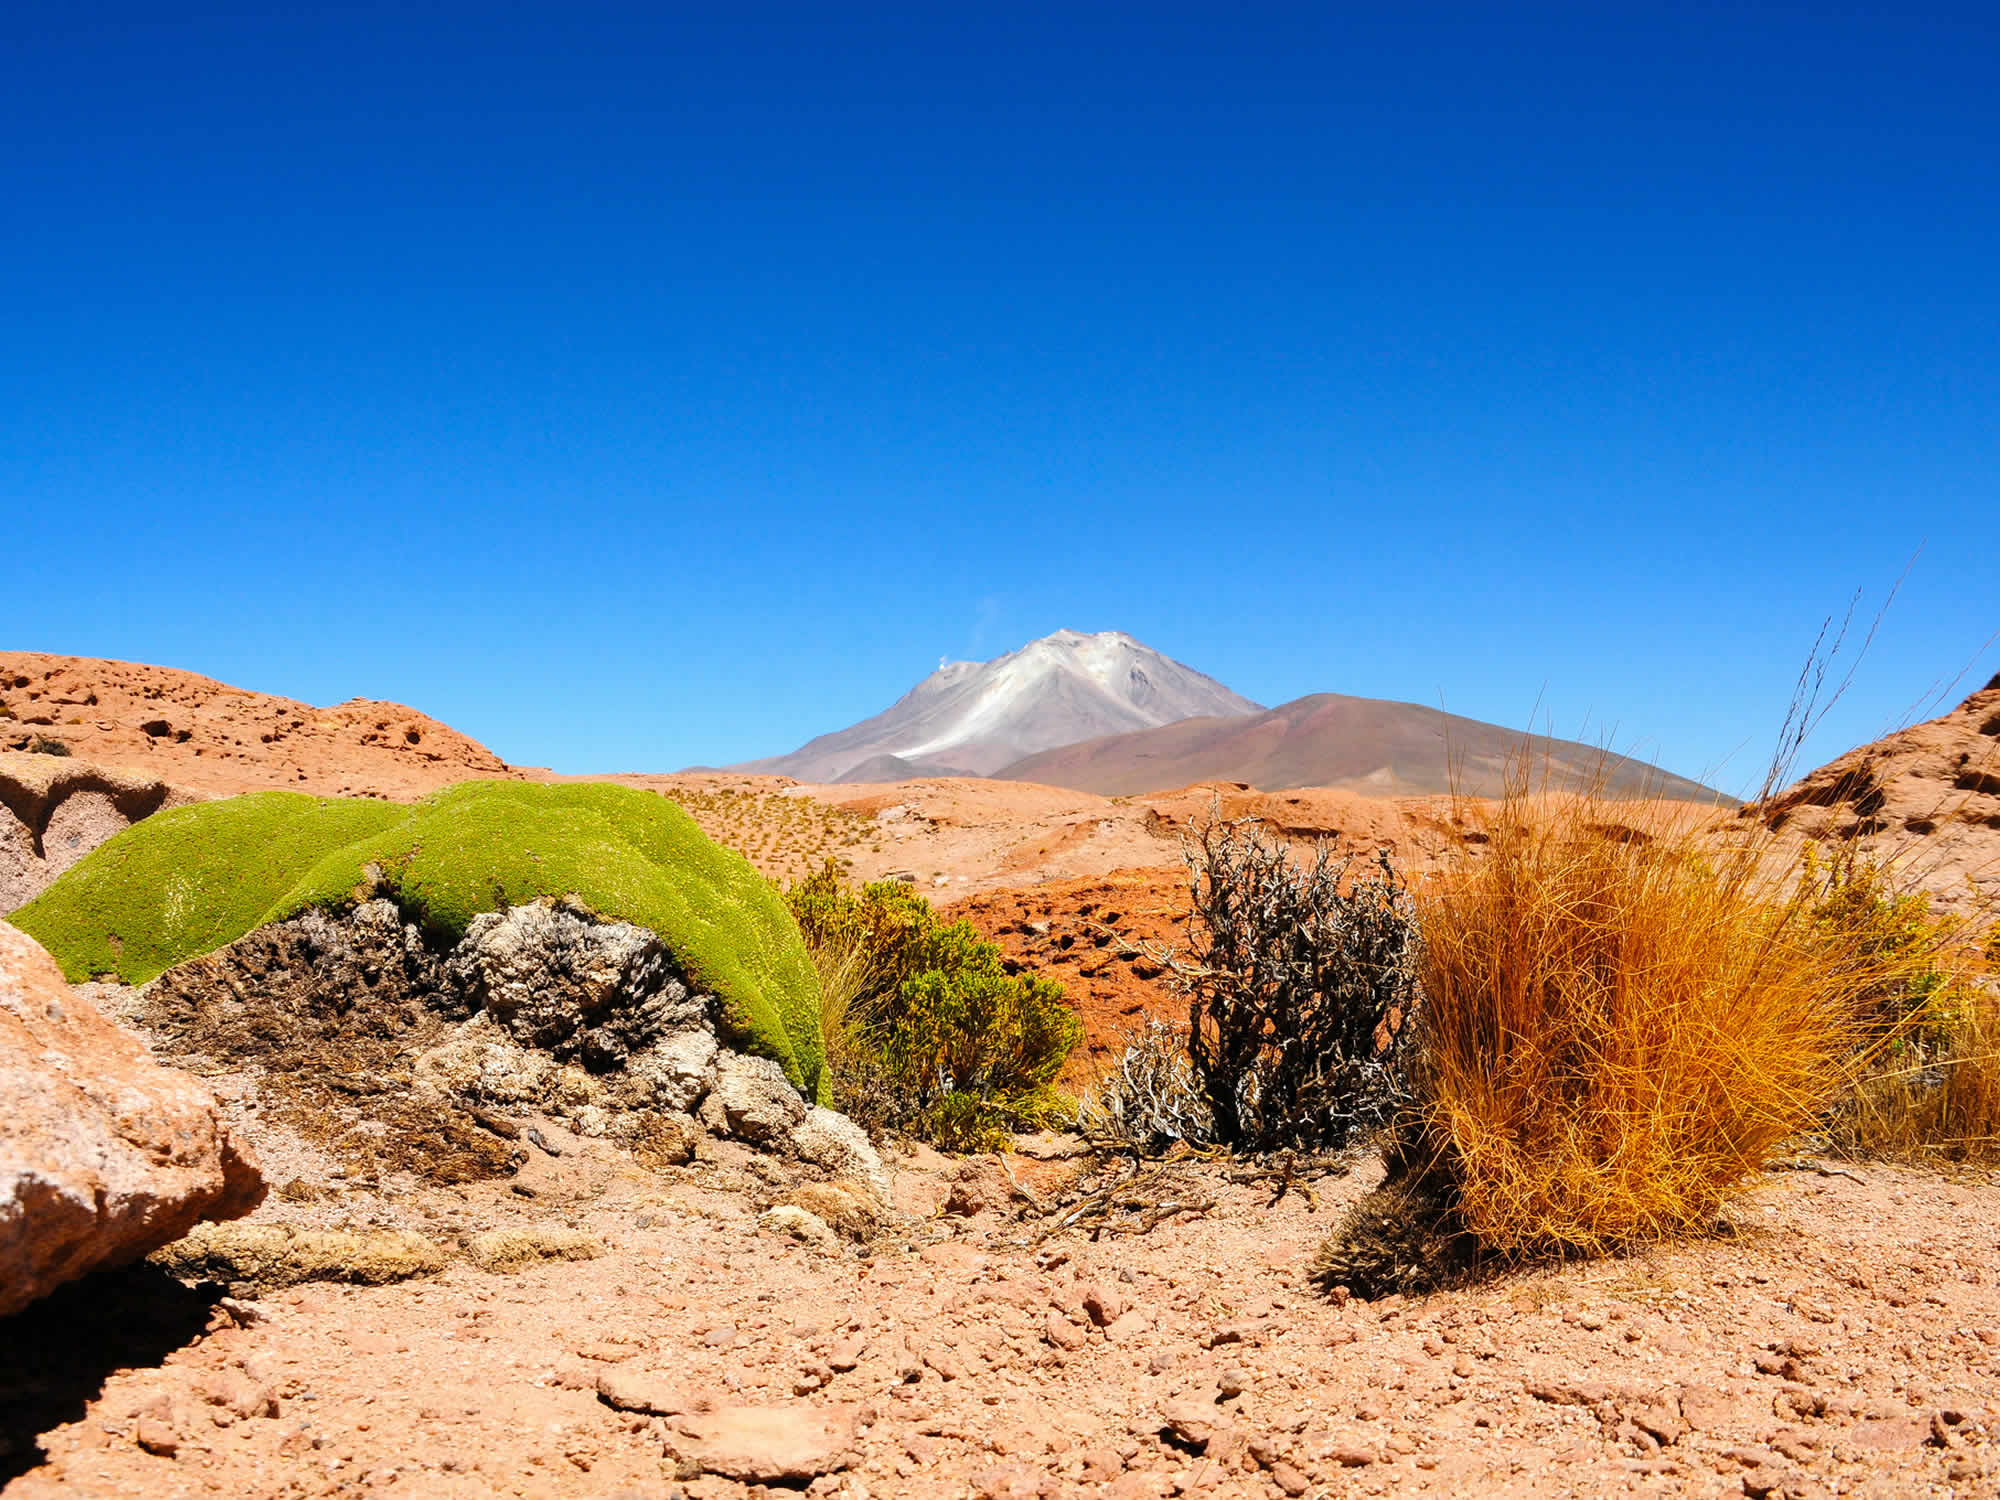 Yareta and the Ollague volcano, Eduardo Avaroa Reserve, Uyuni, Bolivia